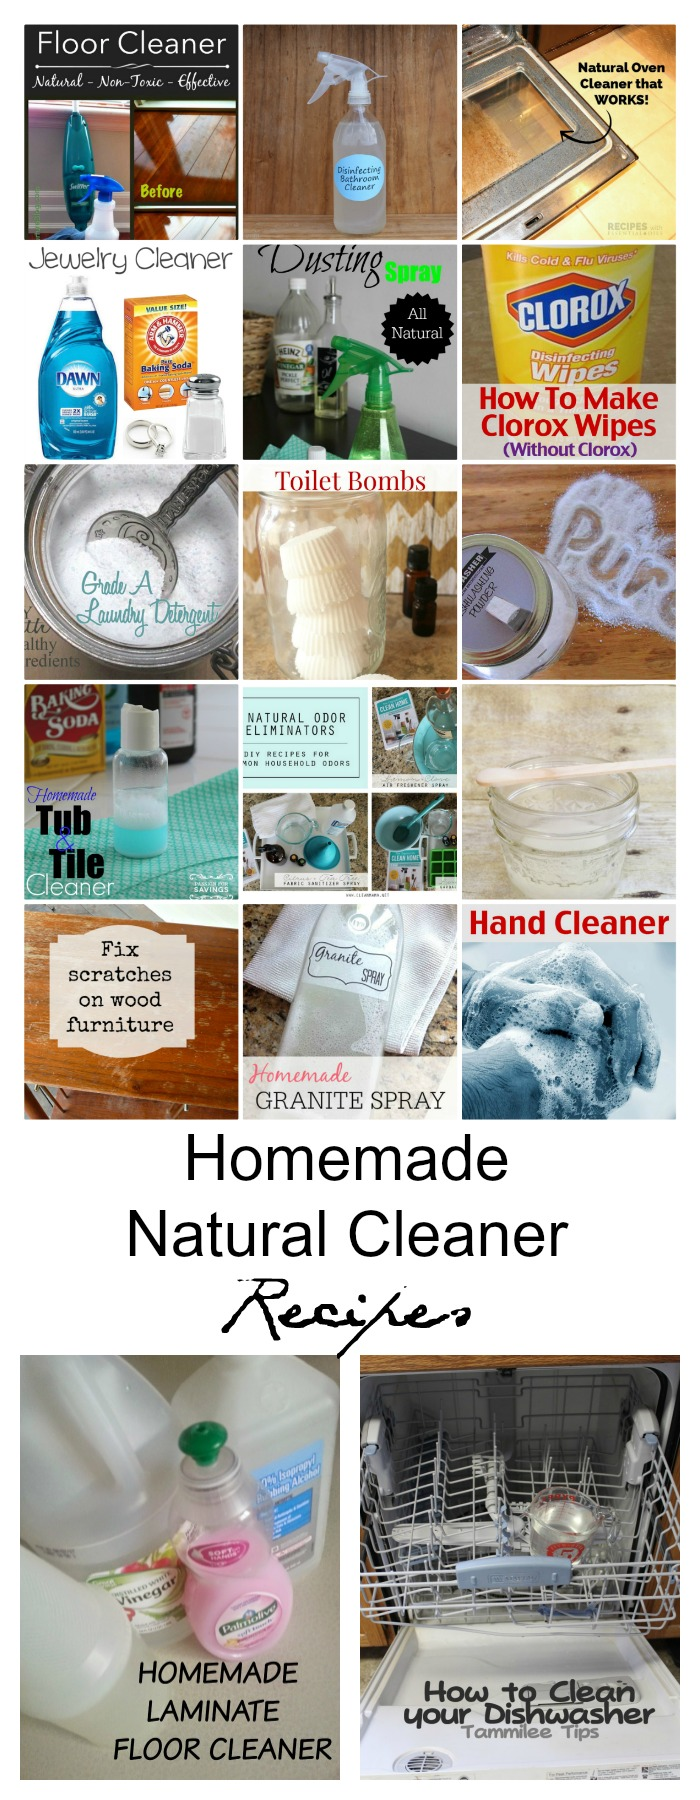 Homemade-Natural-Cleaner-Recipes-Pin